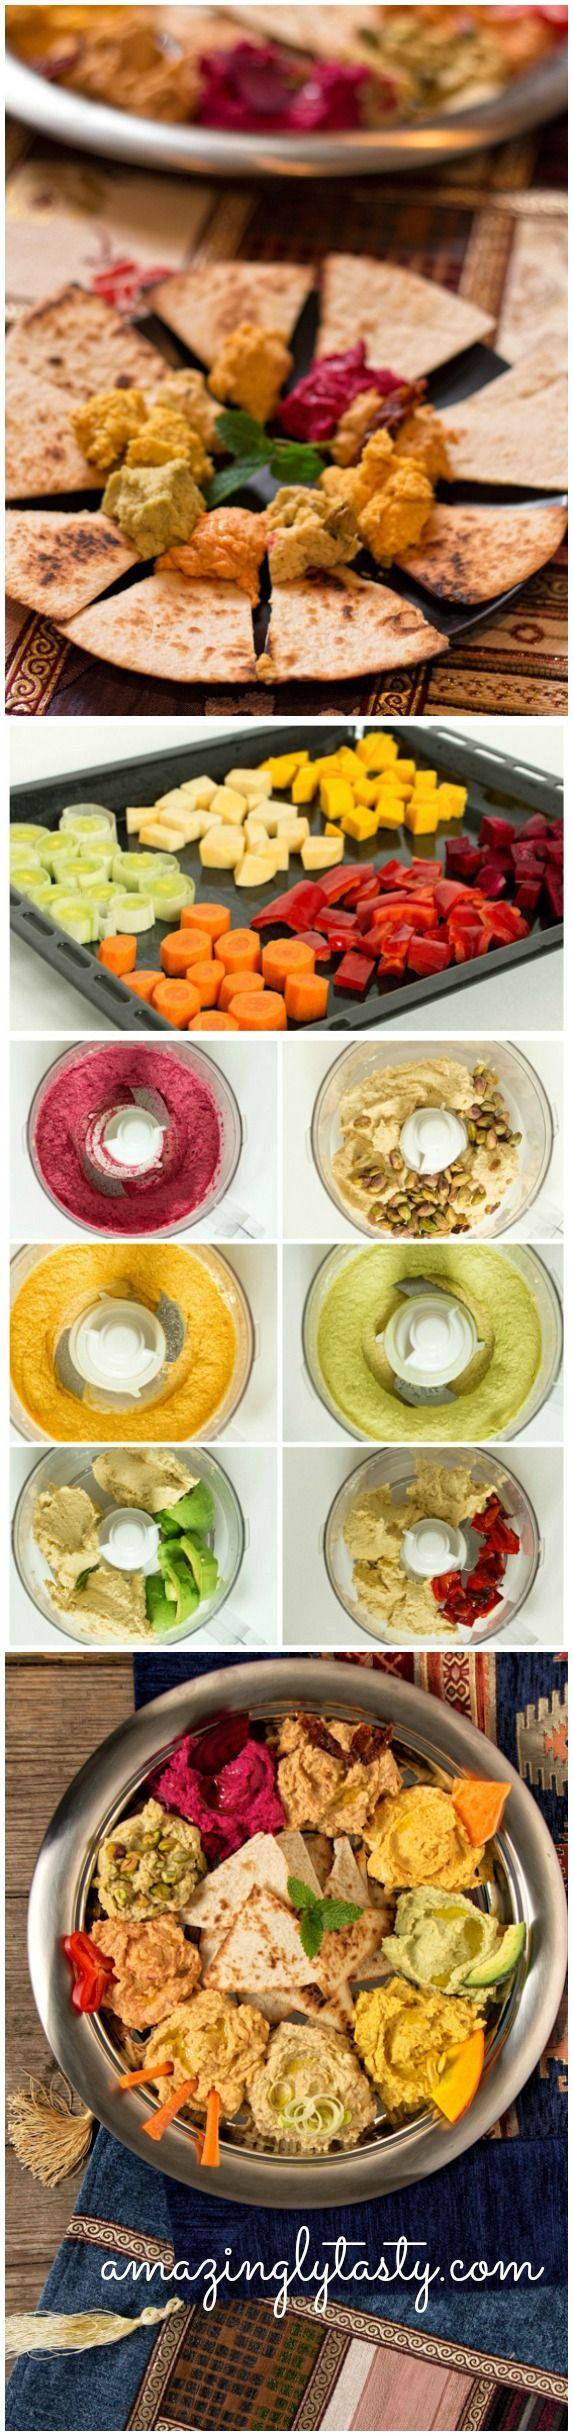 9 Hummus Variations including beetroot, leek, avocado, sweet potato, pistachio, sun dried tomato, carrot and bell pepper hummus.                                                                                                                                                                                 Más